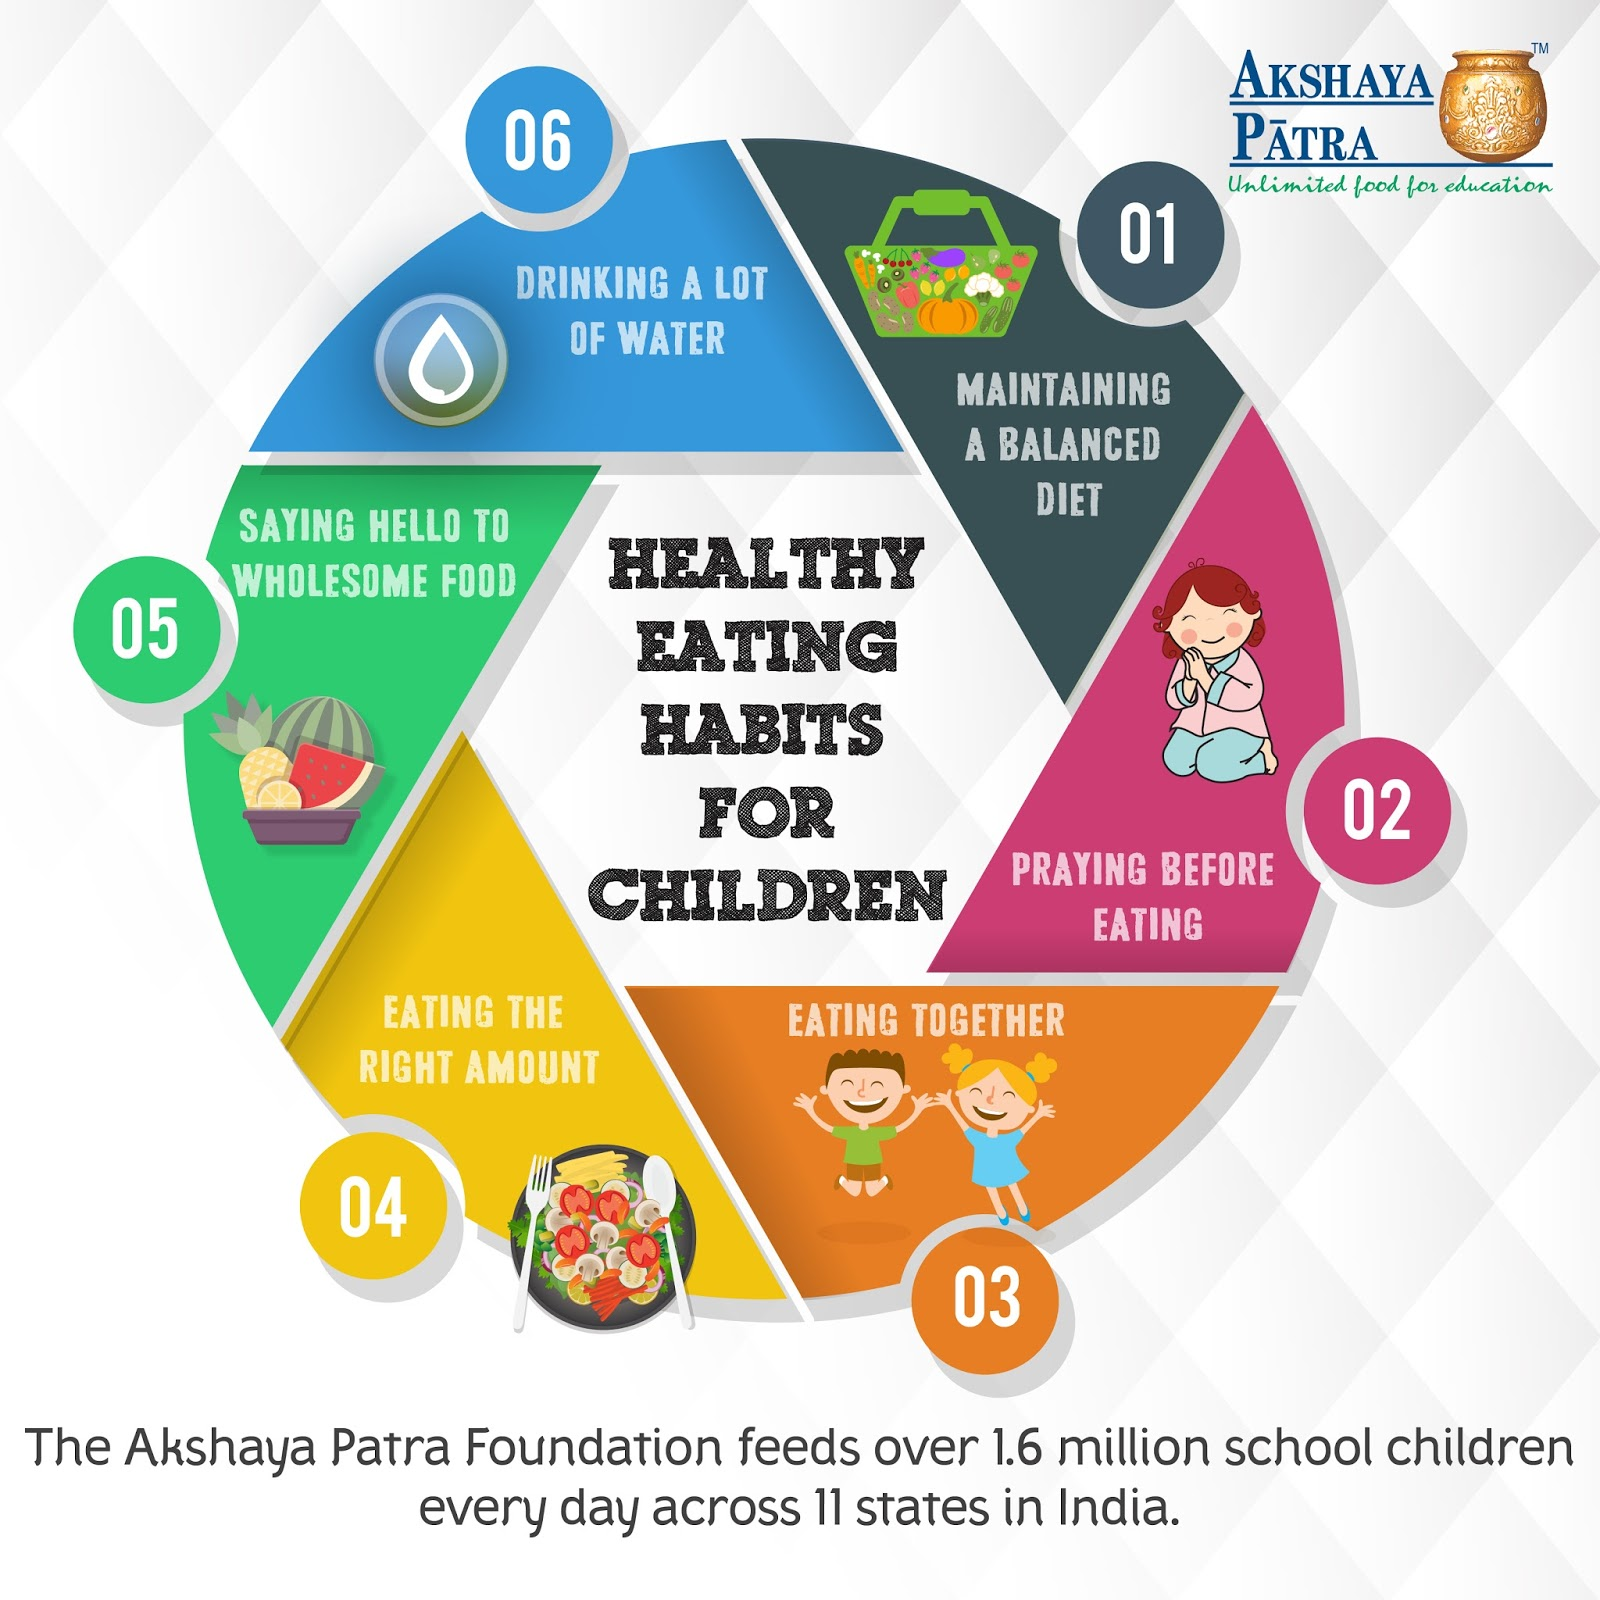 10 Healthy Eating Habits For Children By Akshaya Patra